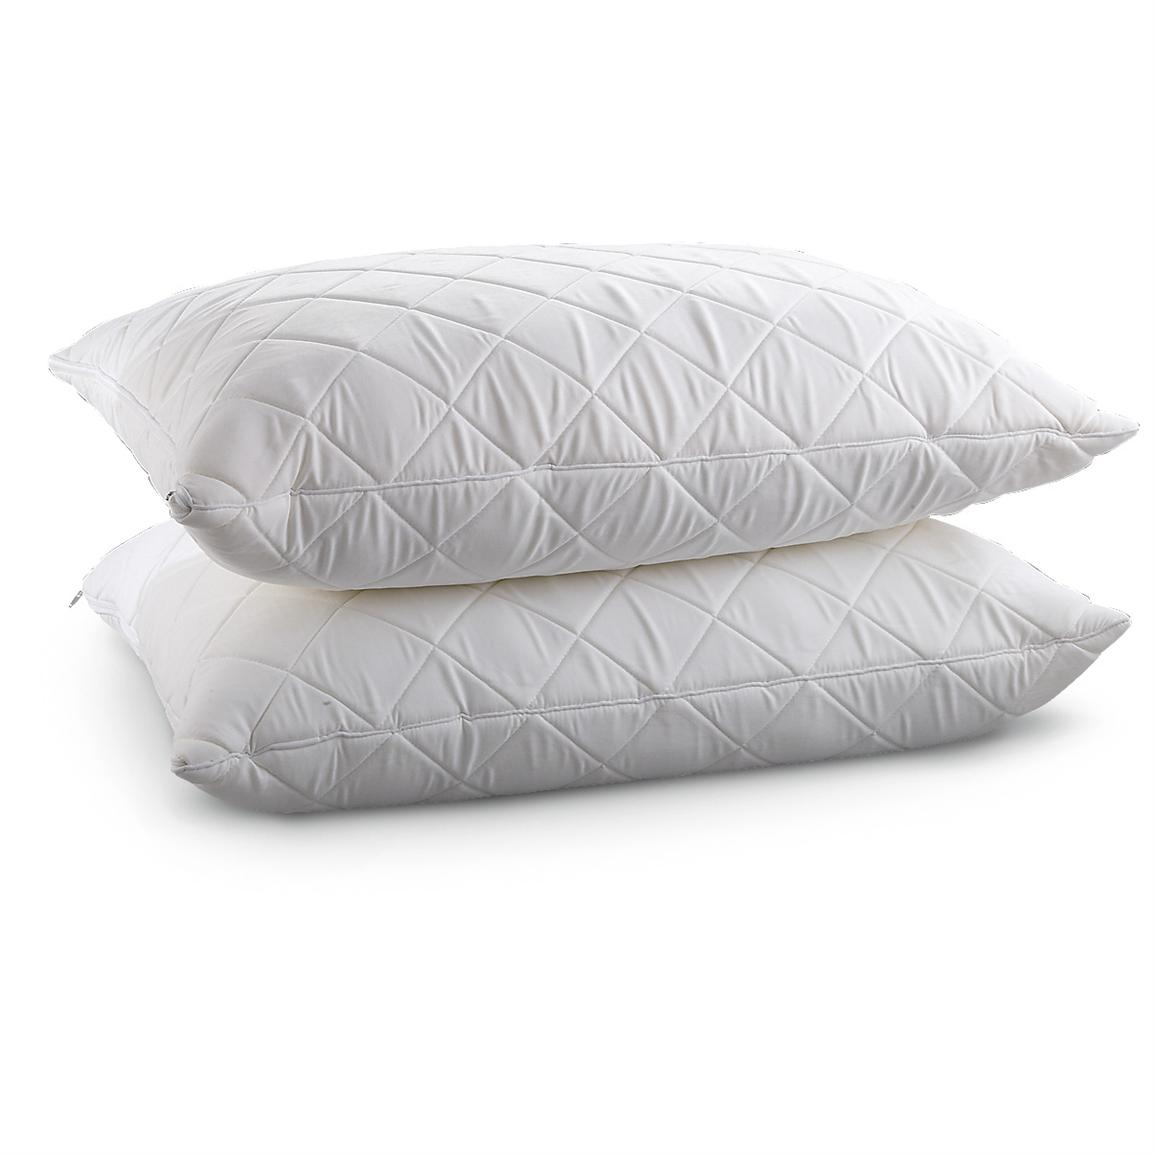 Wellrest™ Quilted Memory Foam Pillow